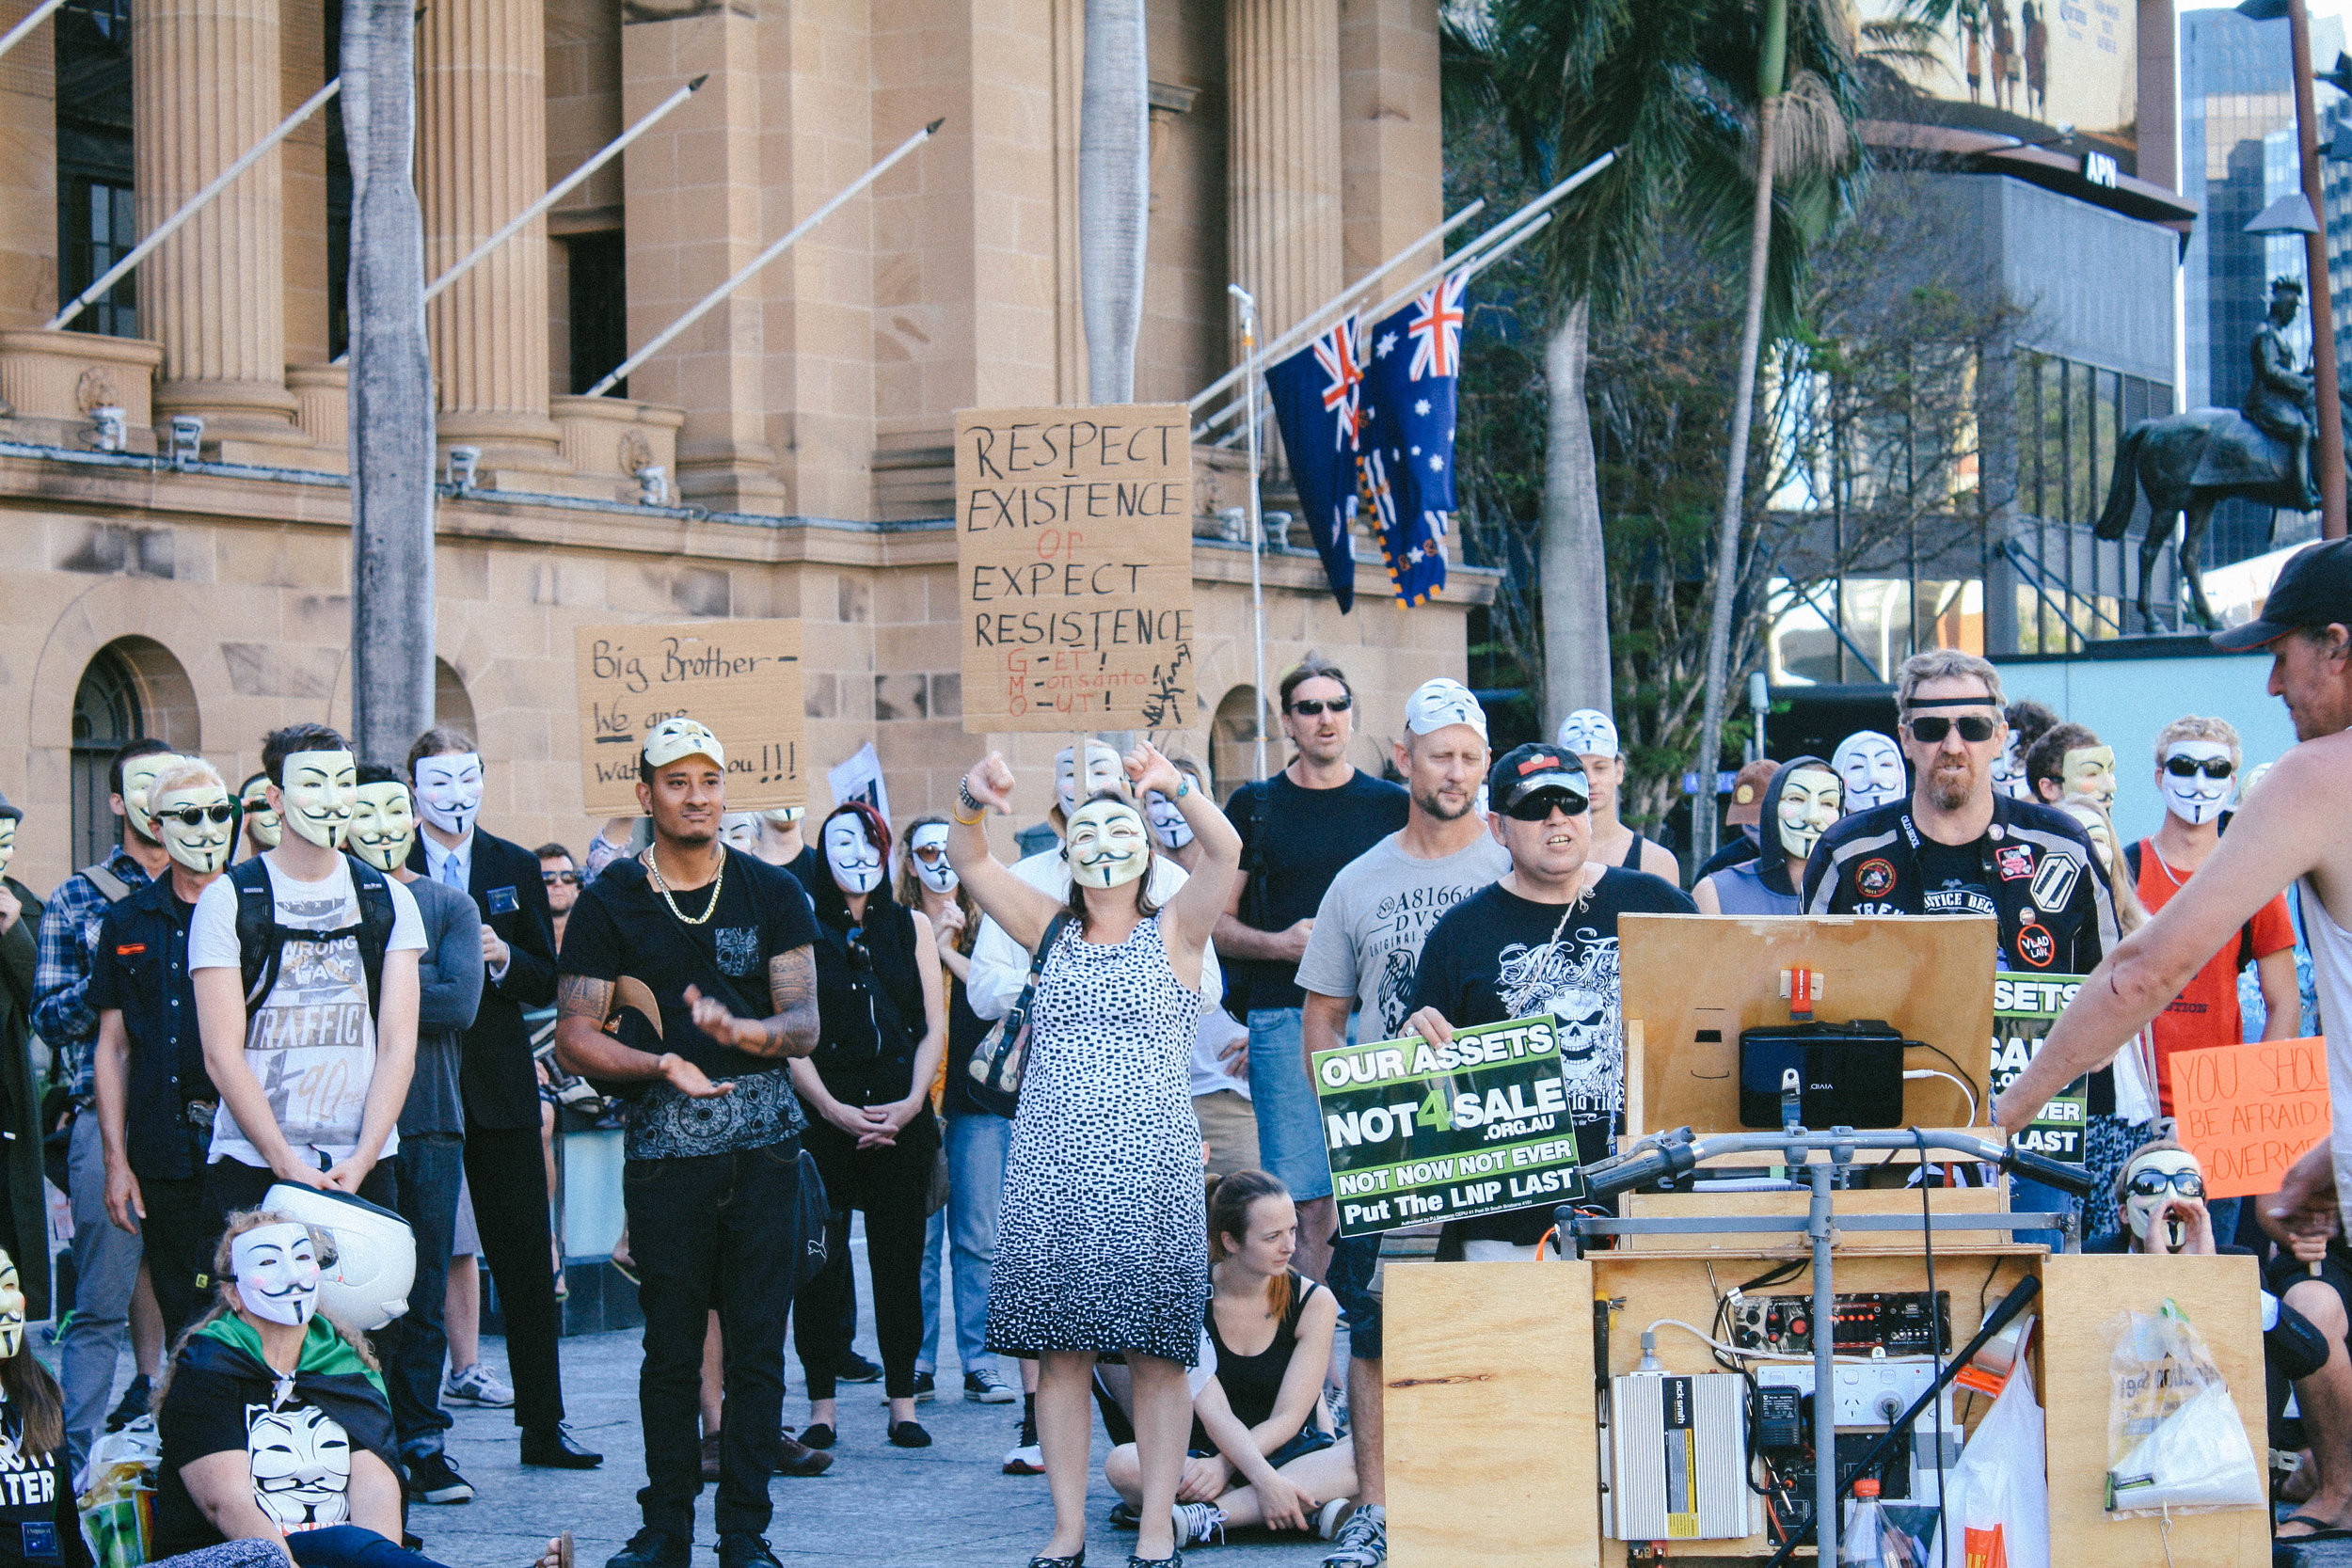 Lesly Lotha_Newzulu_Million_Mask_March_Brisbane_Australia_02